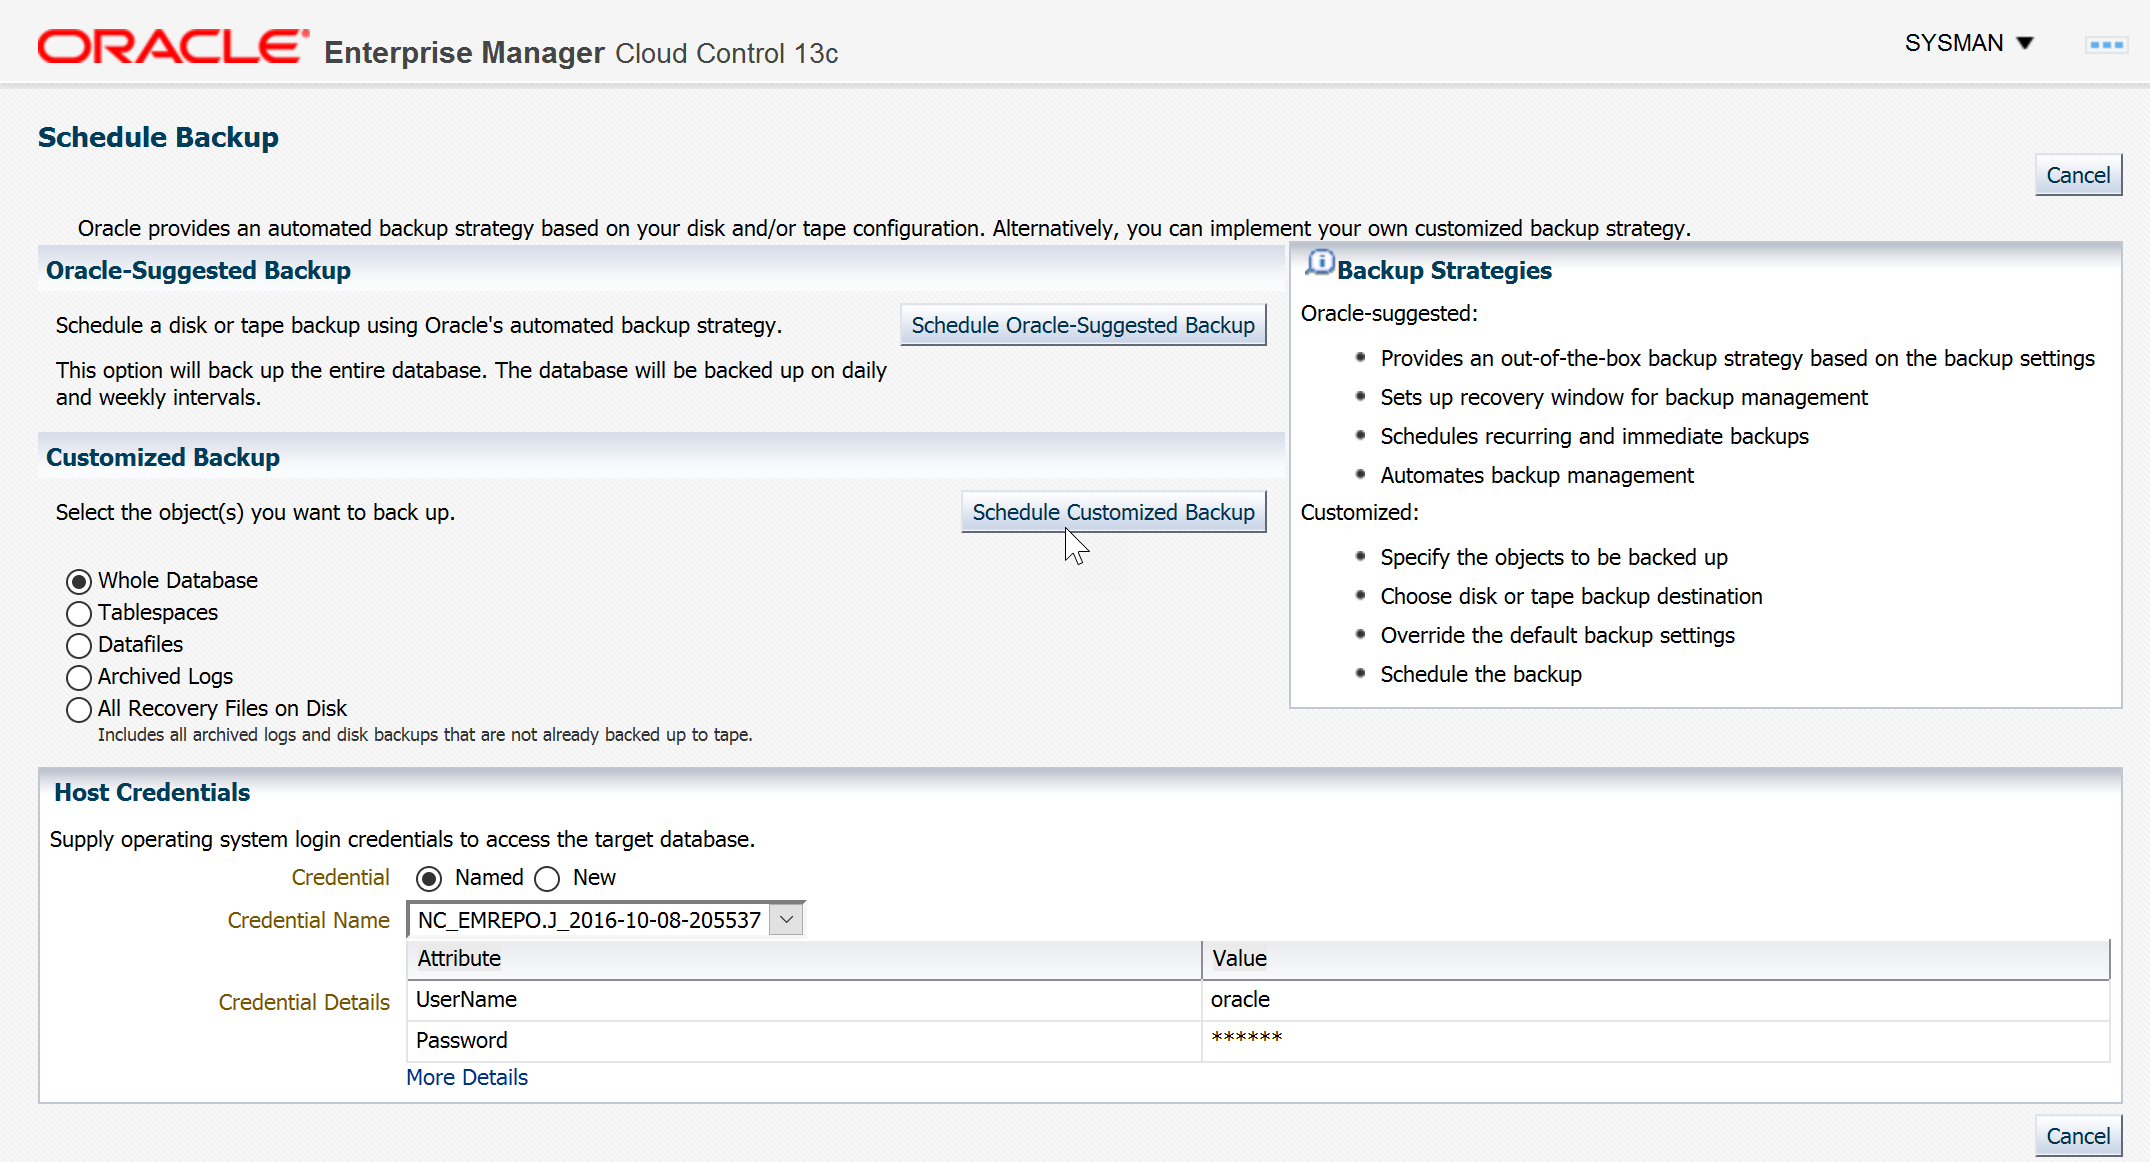 Connect your Enterprise Manager 13cR2 with the Oracle Database